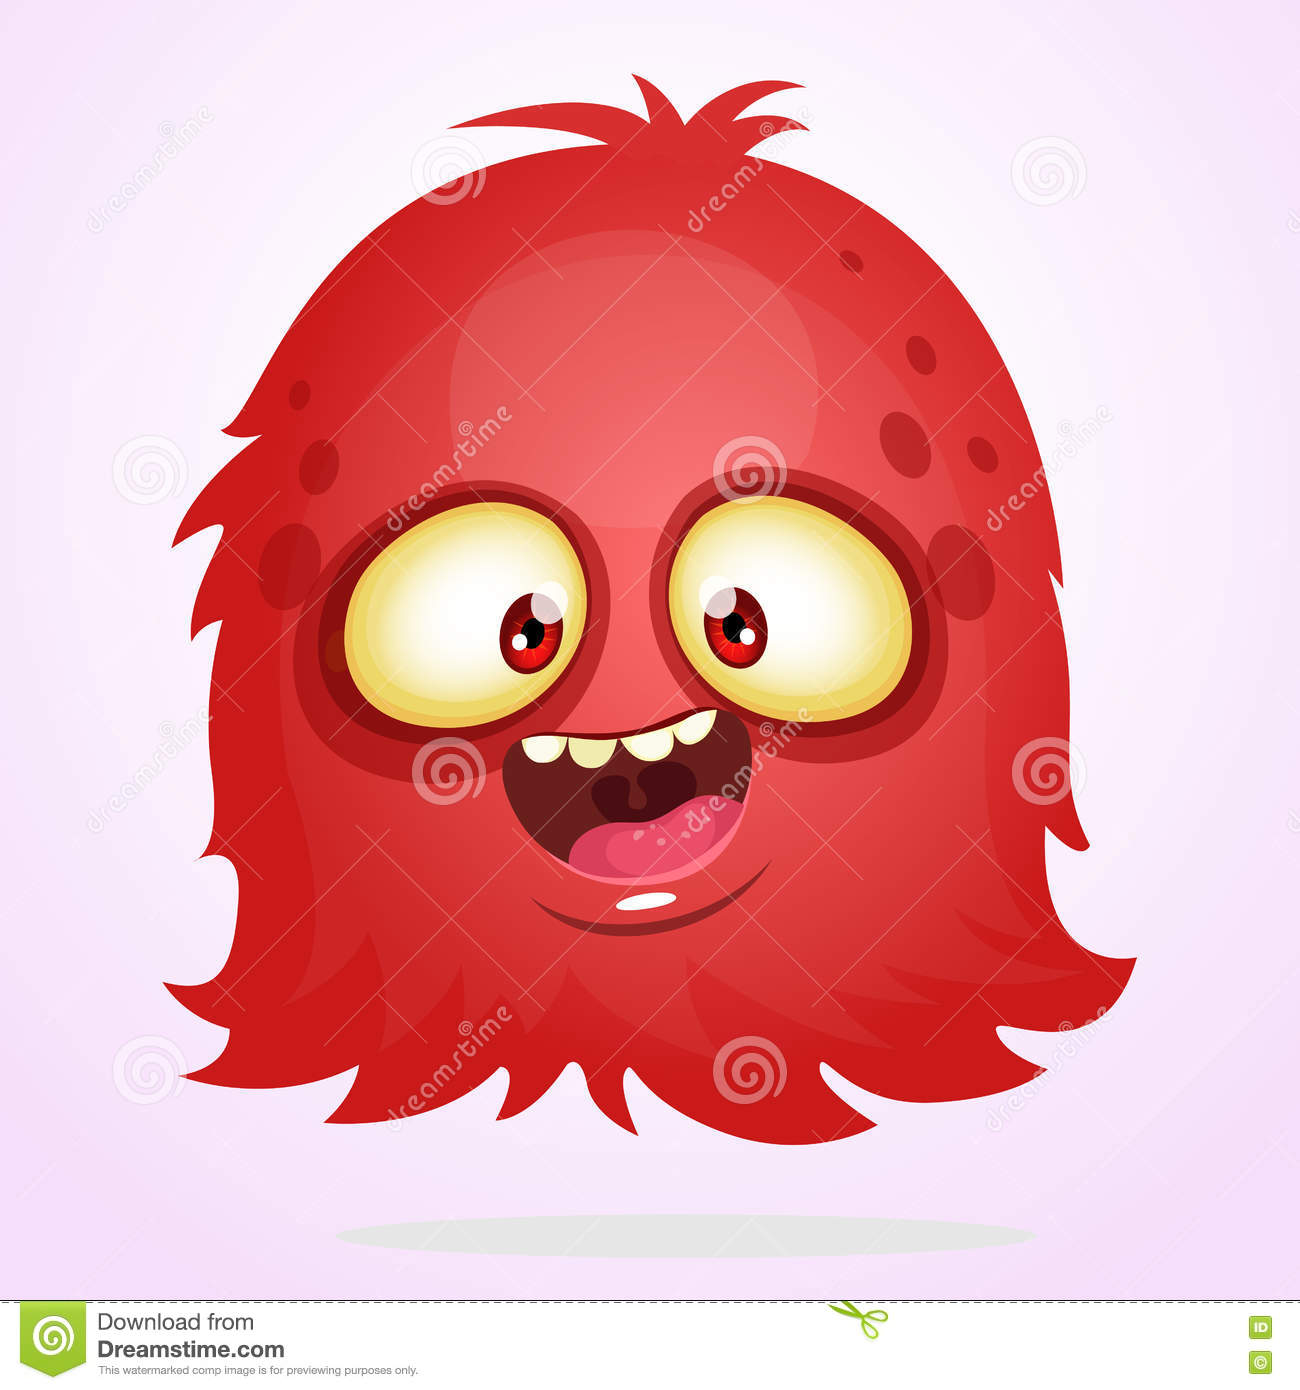 vector cartoon halloween monster. red furry flying monster with big